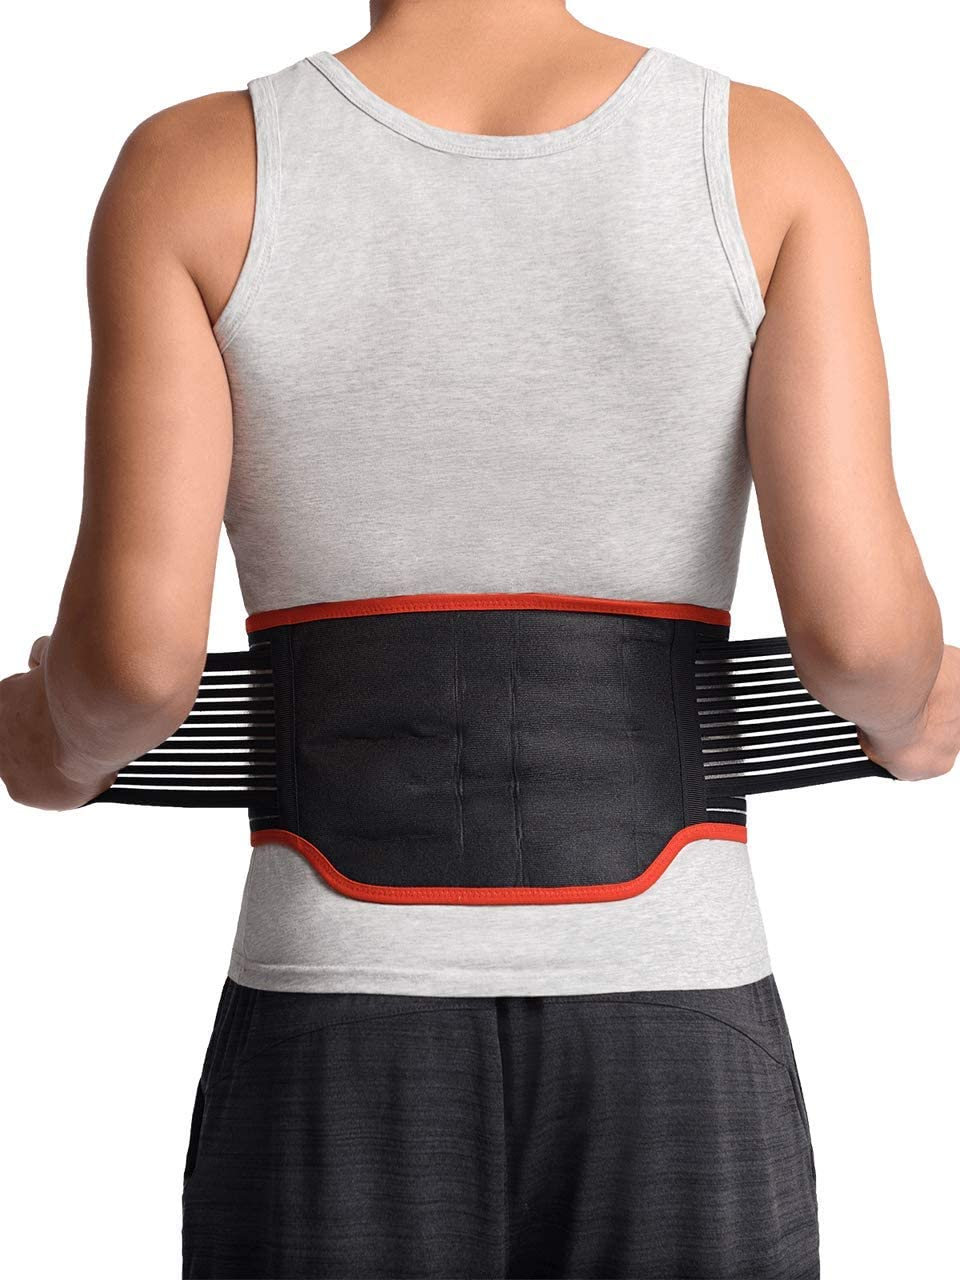 """Maxar BMS-511 Lumbar Support Back Brace with 31 Powerful Magnets, Far Infrared Technology, Magnetic Therapy Belt, Pain and Stress Relief, Sciatica, Scoliosis, Herniated Disc, Large 36""""-40"""""""